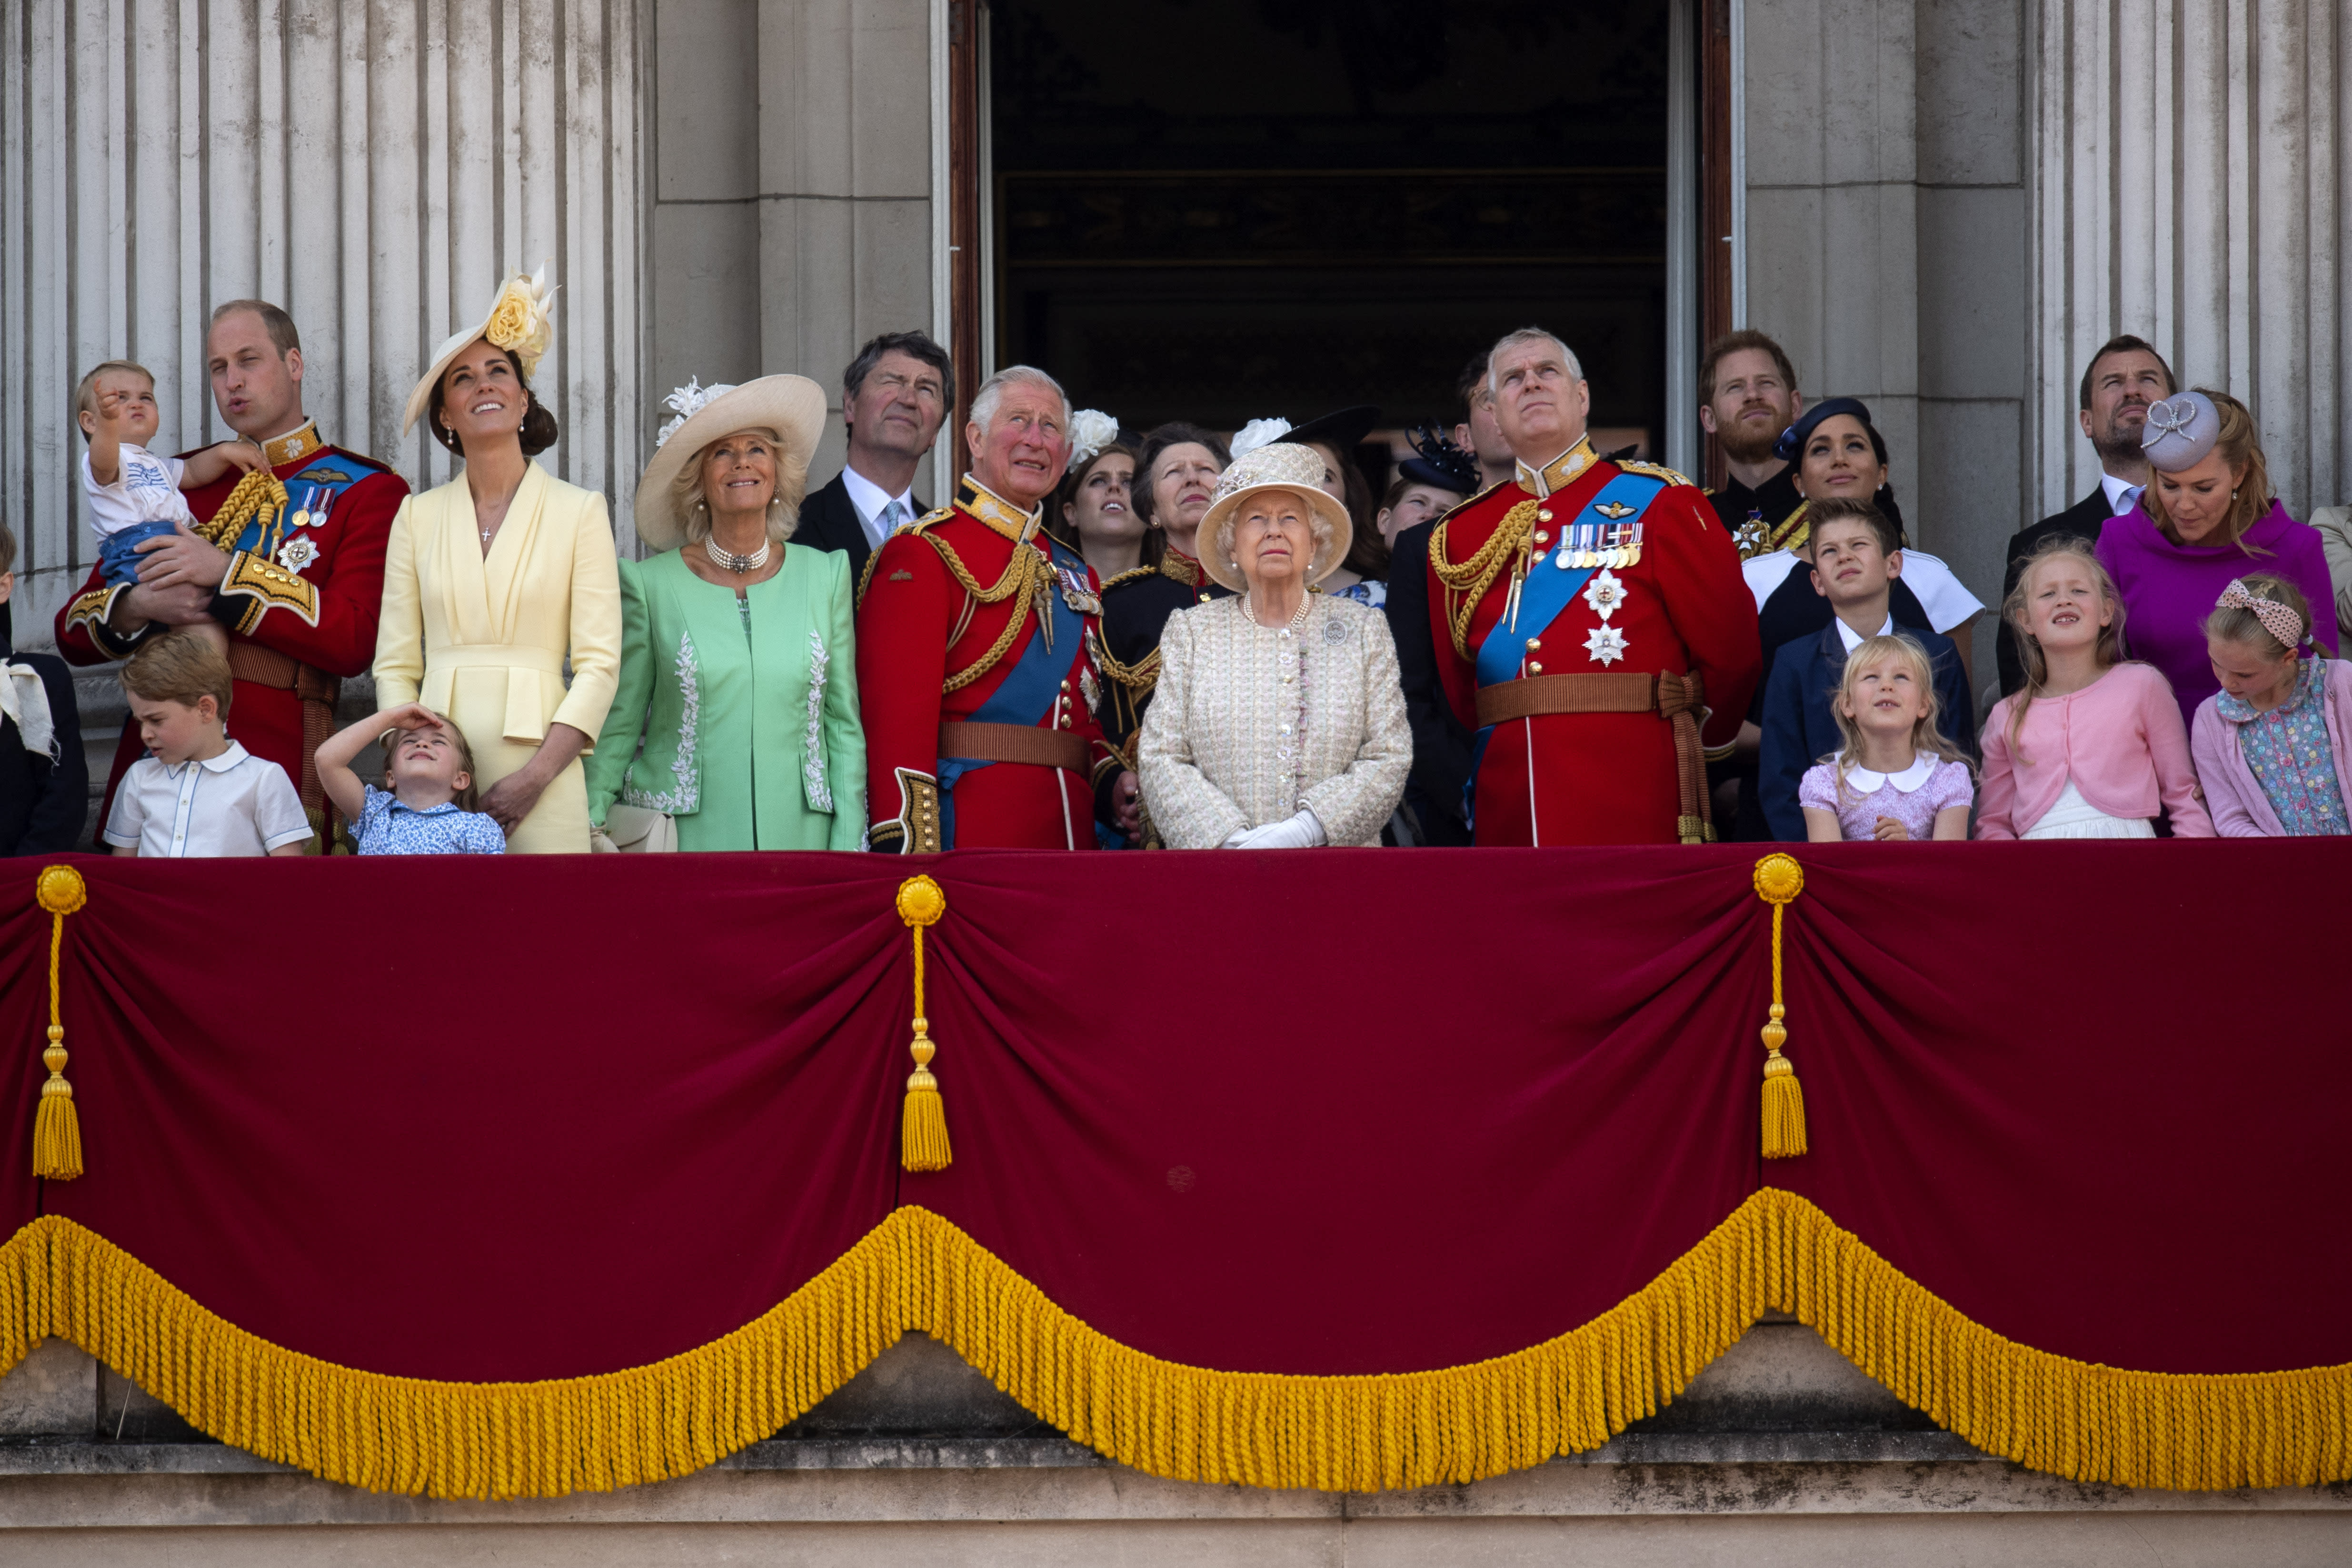 The Royal Family on the Buckingham Palace balcony for Trooping the Colour. [Photo: PA]